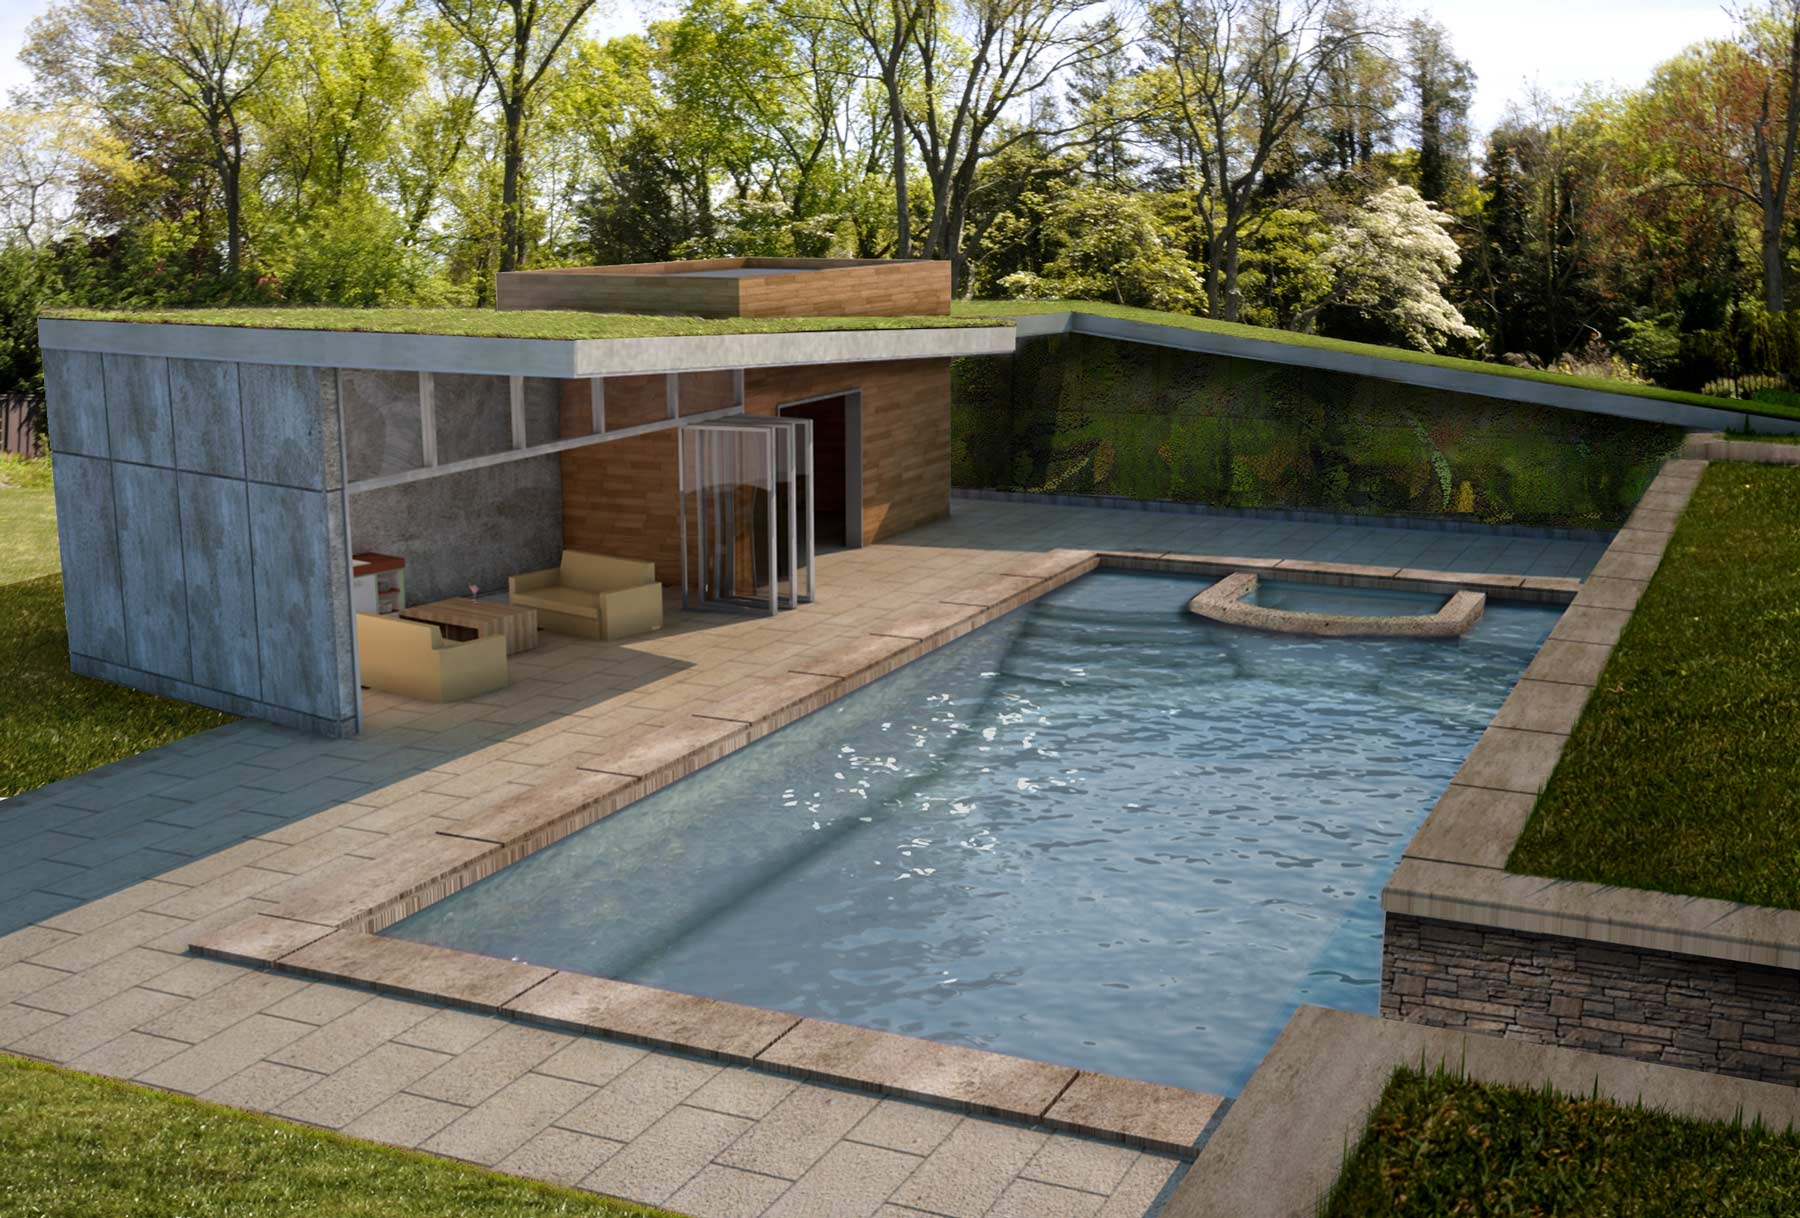 Green Roof Modern Pool House Architectural Rendering